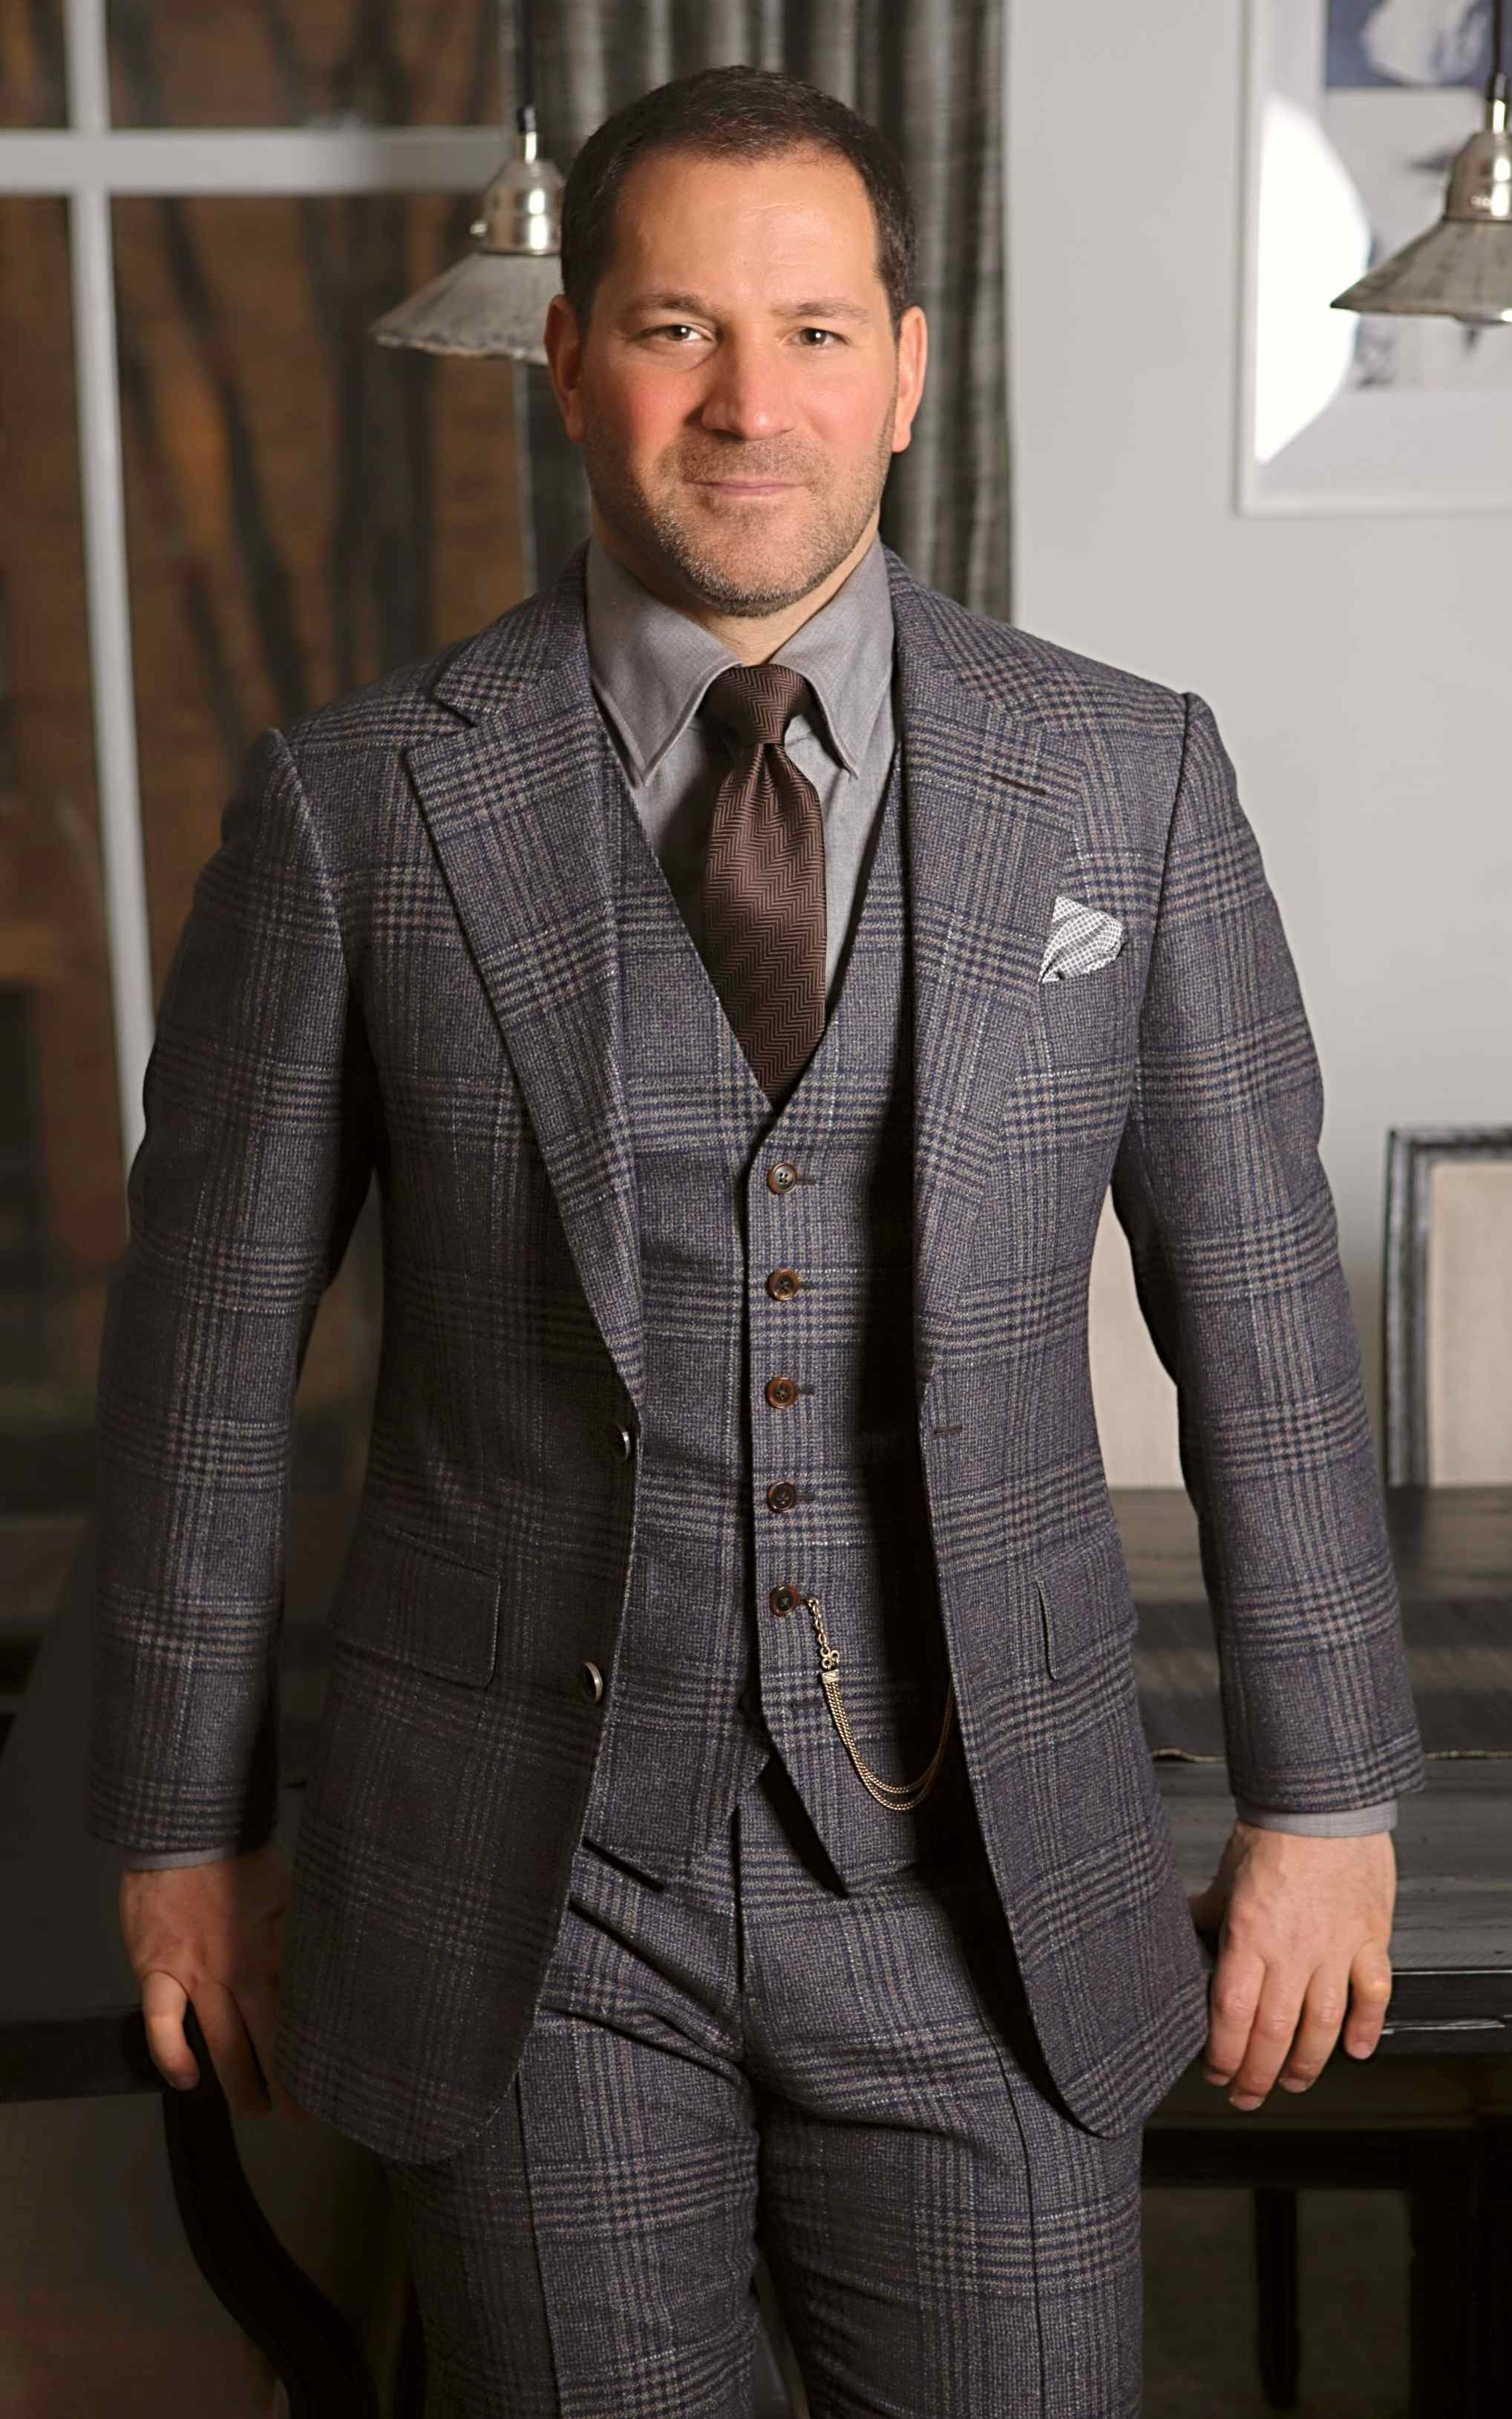 Brown and Blue Glencheck Suit